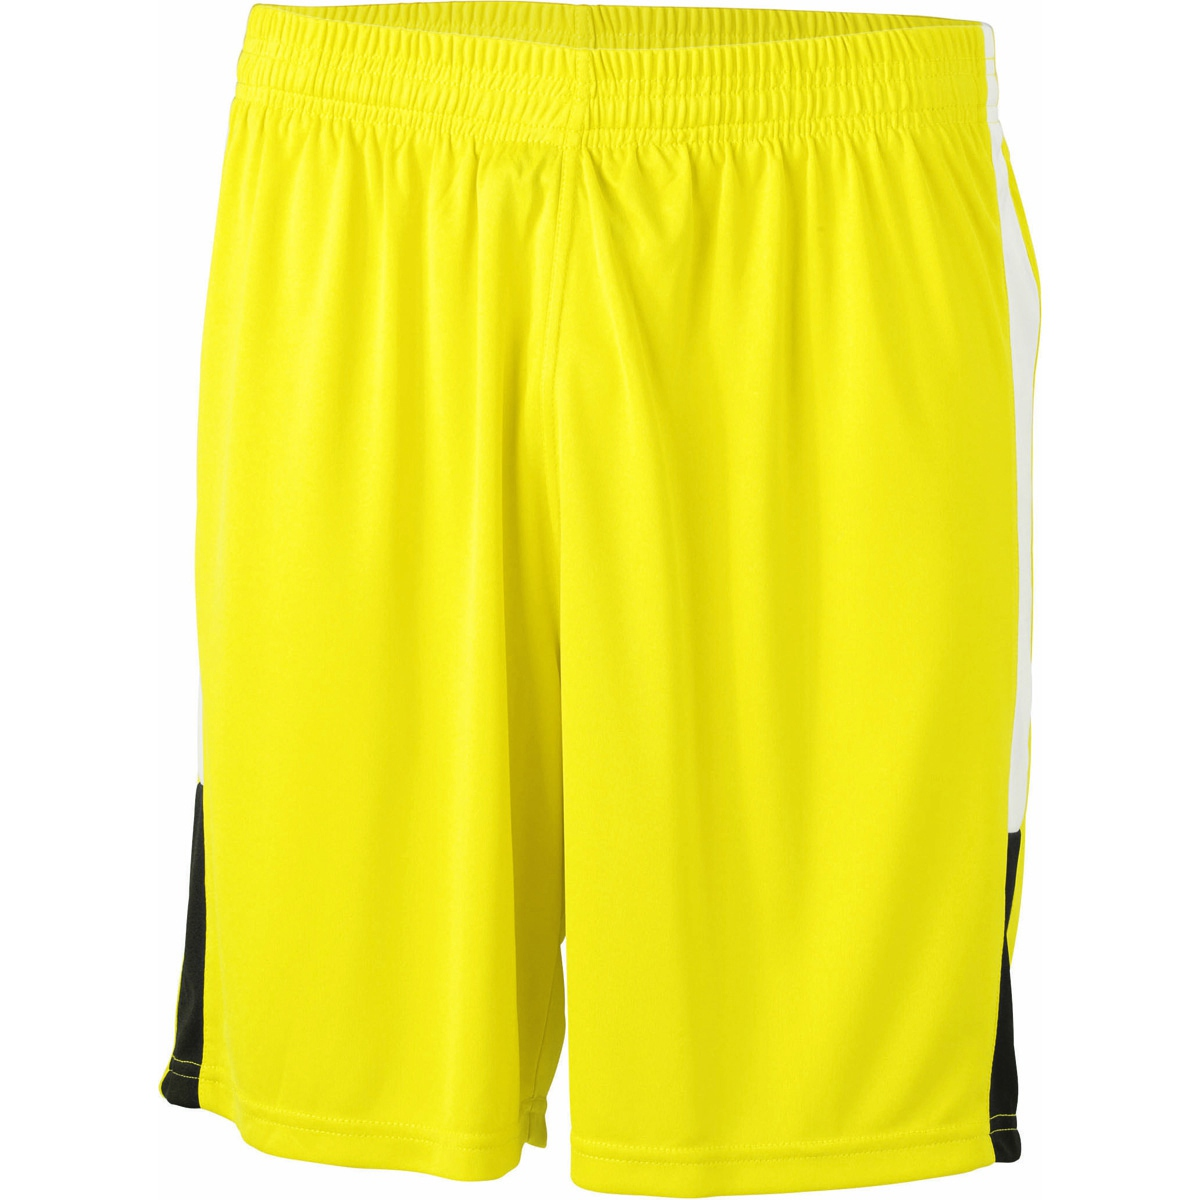 Short multi sport ADULTE - Foot basket handball - JN468 - jaune